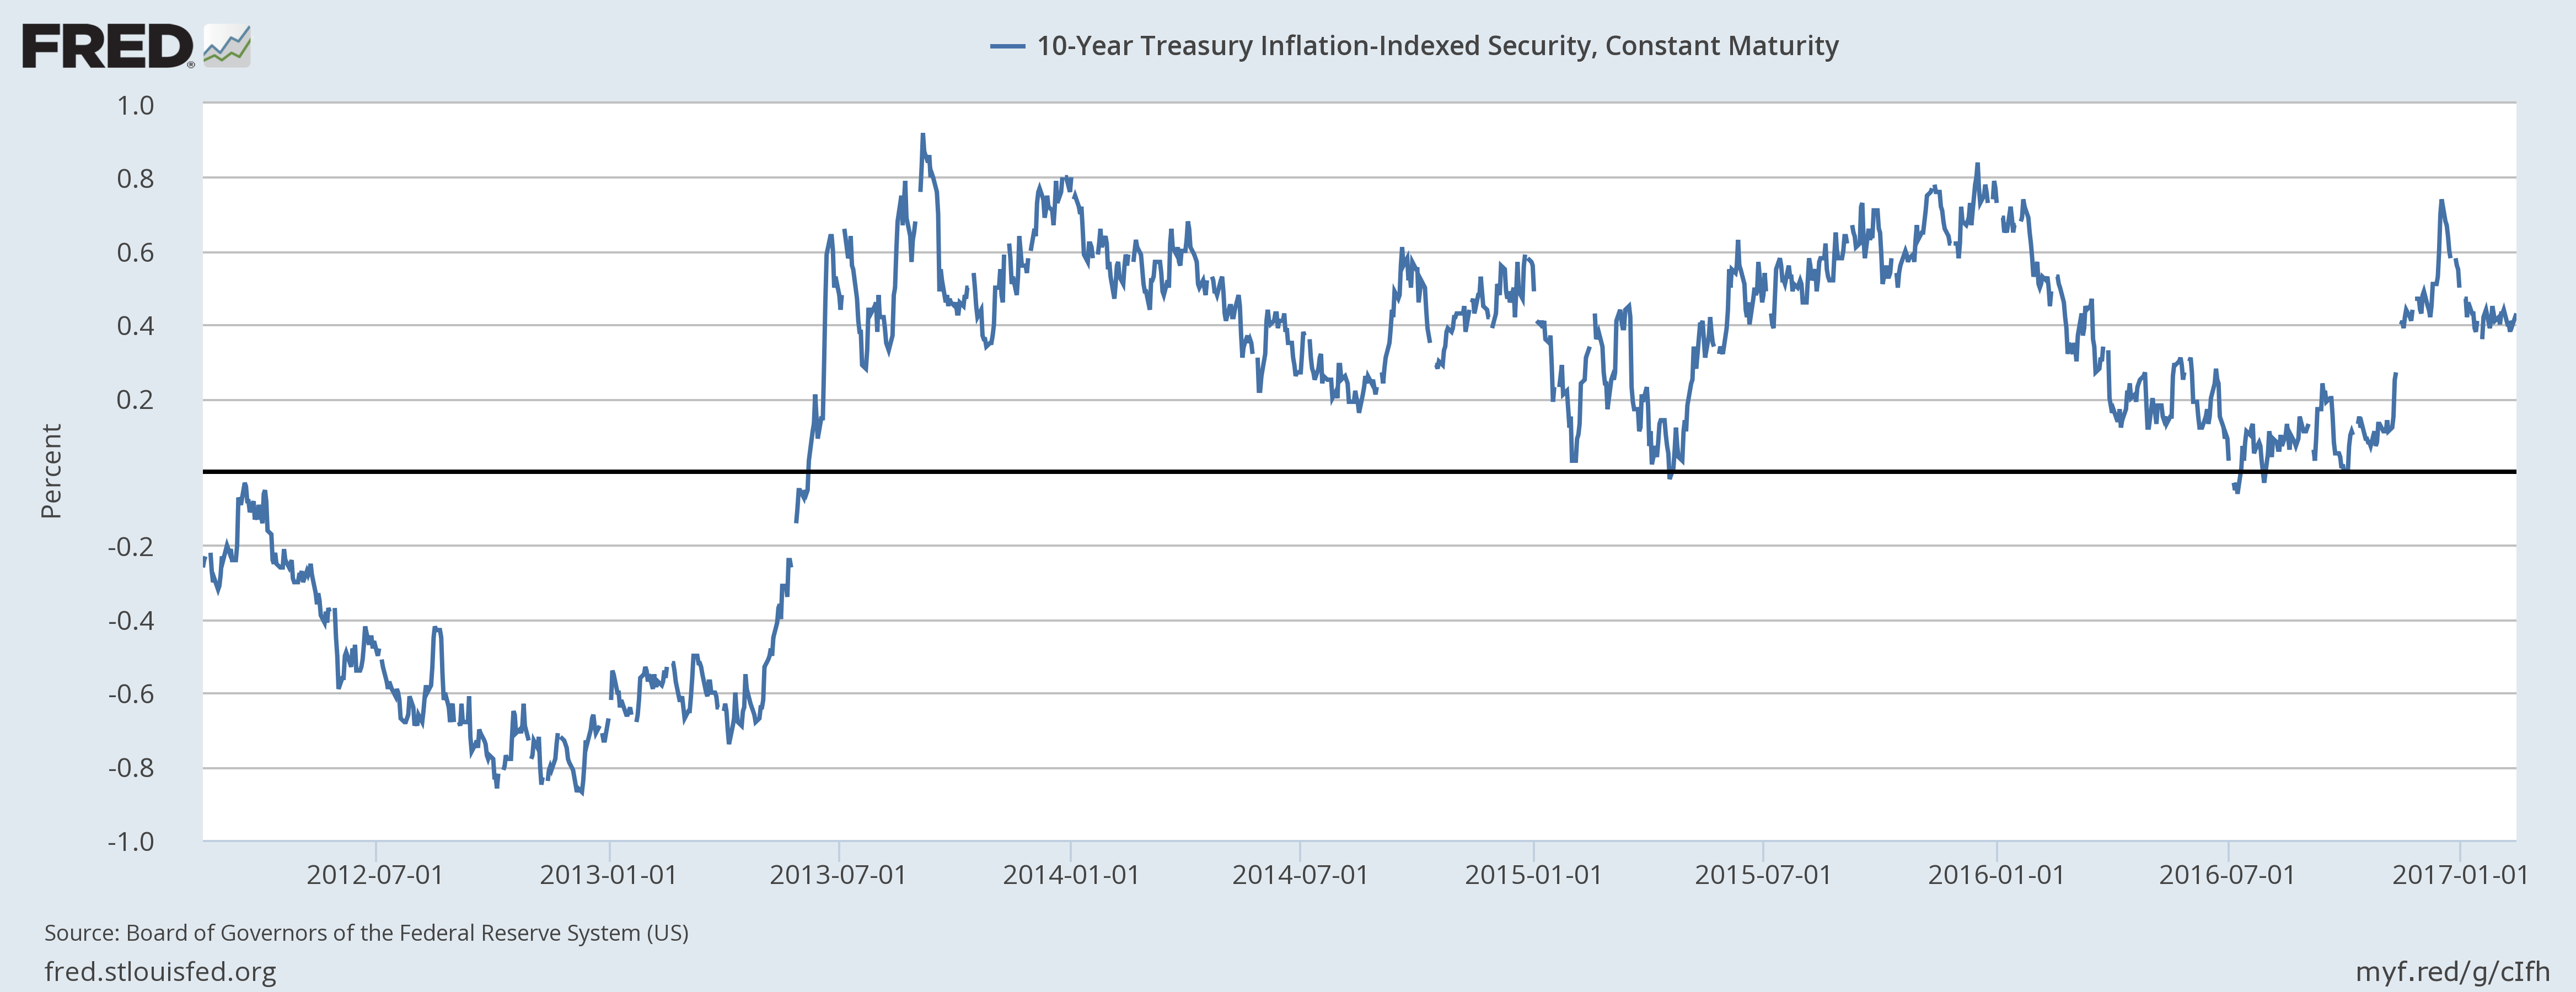 10 Year Treasury Inflation January 2012 - January 2017